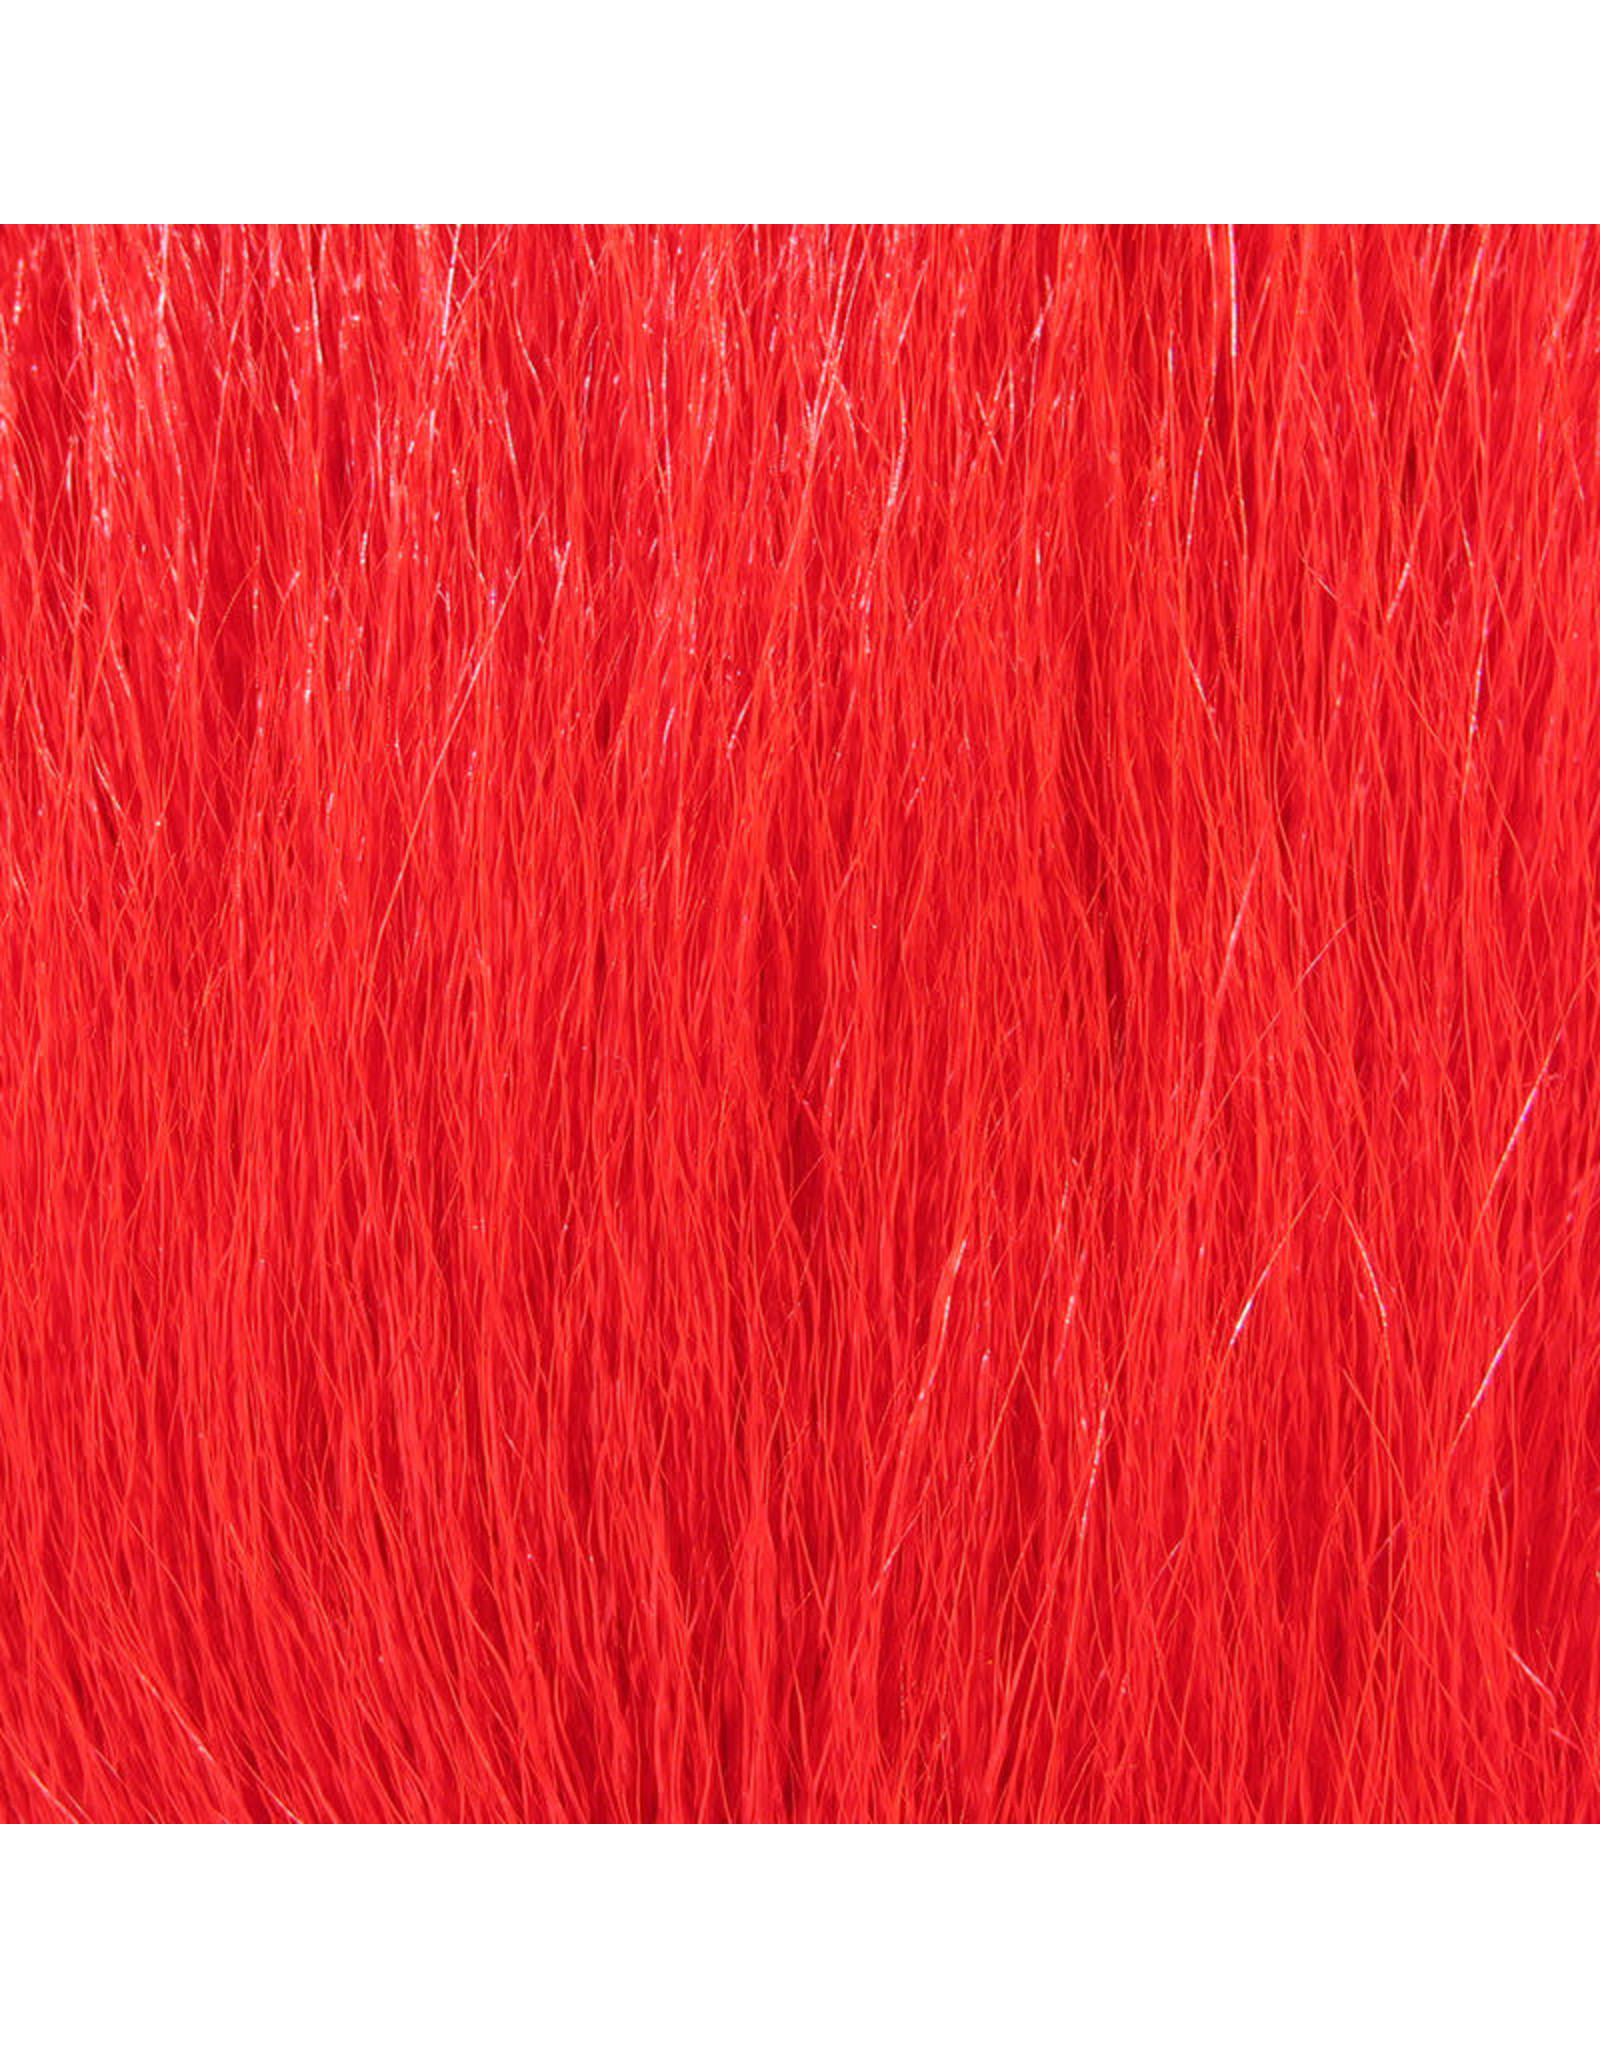 Hareline Dubbin Deer Belly Hair Dyed from White